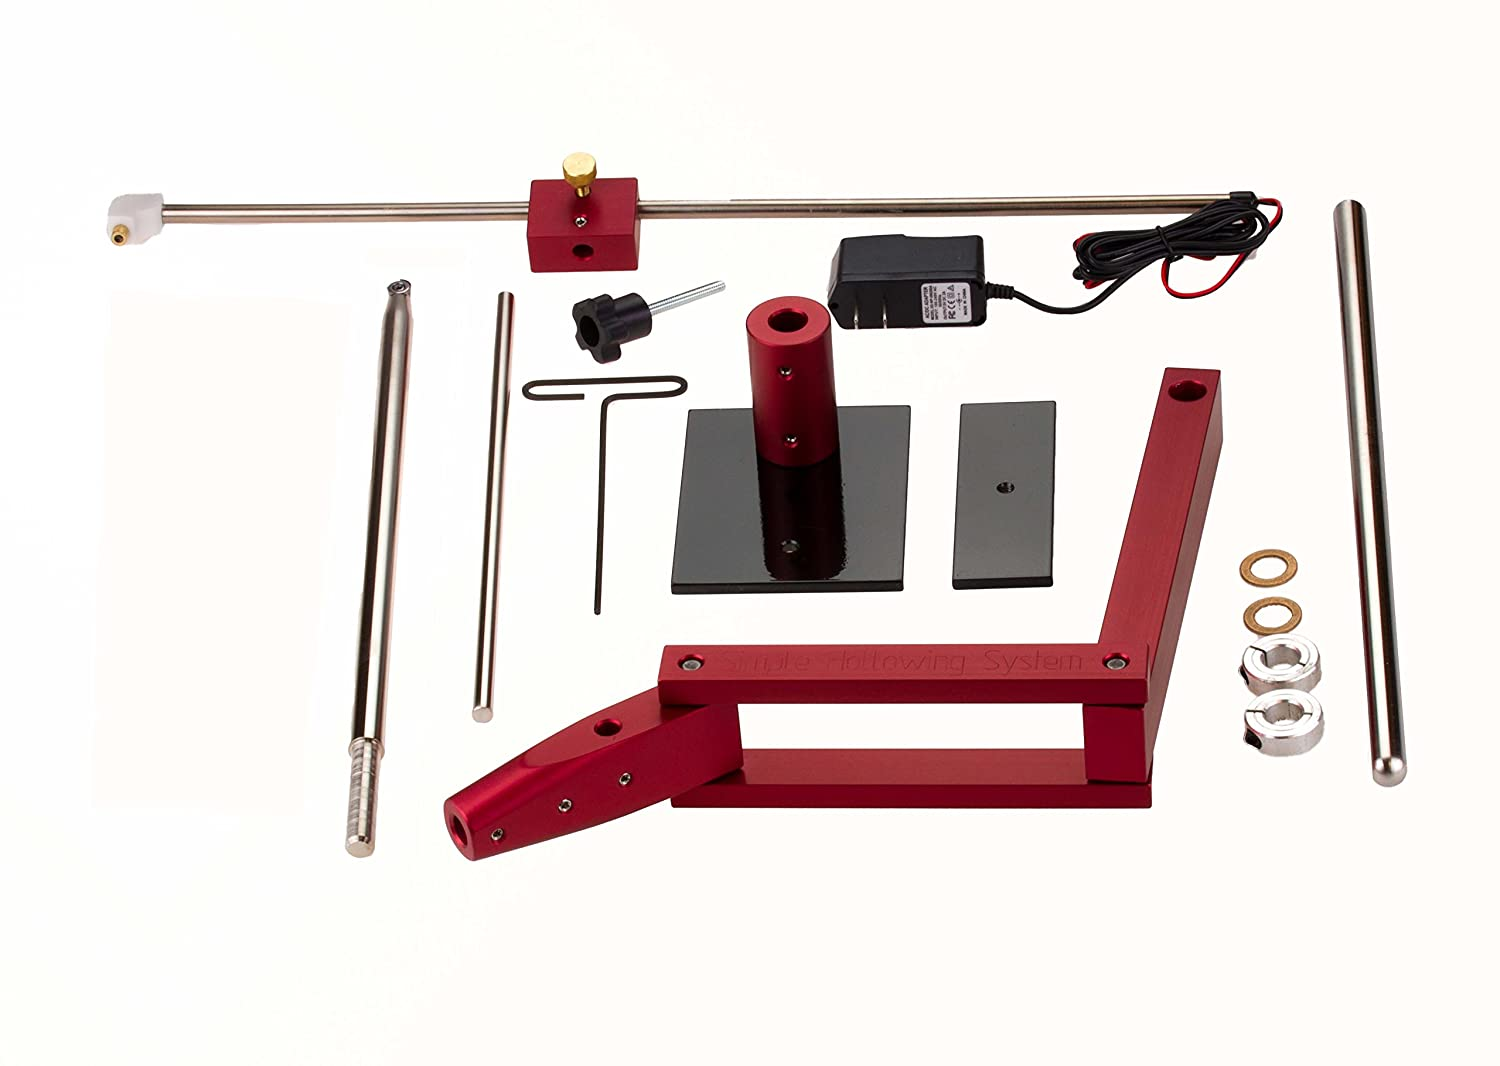 Accepts All Simple Woodturning Tools. SHS with Laser and STH SSNH SSCF 16 Simple Hollowing System